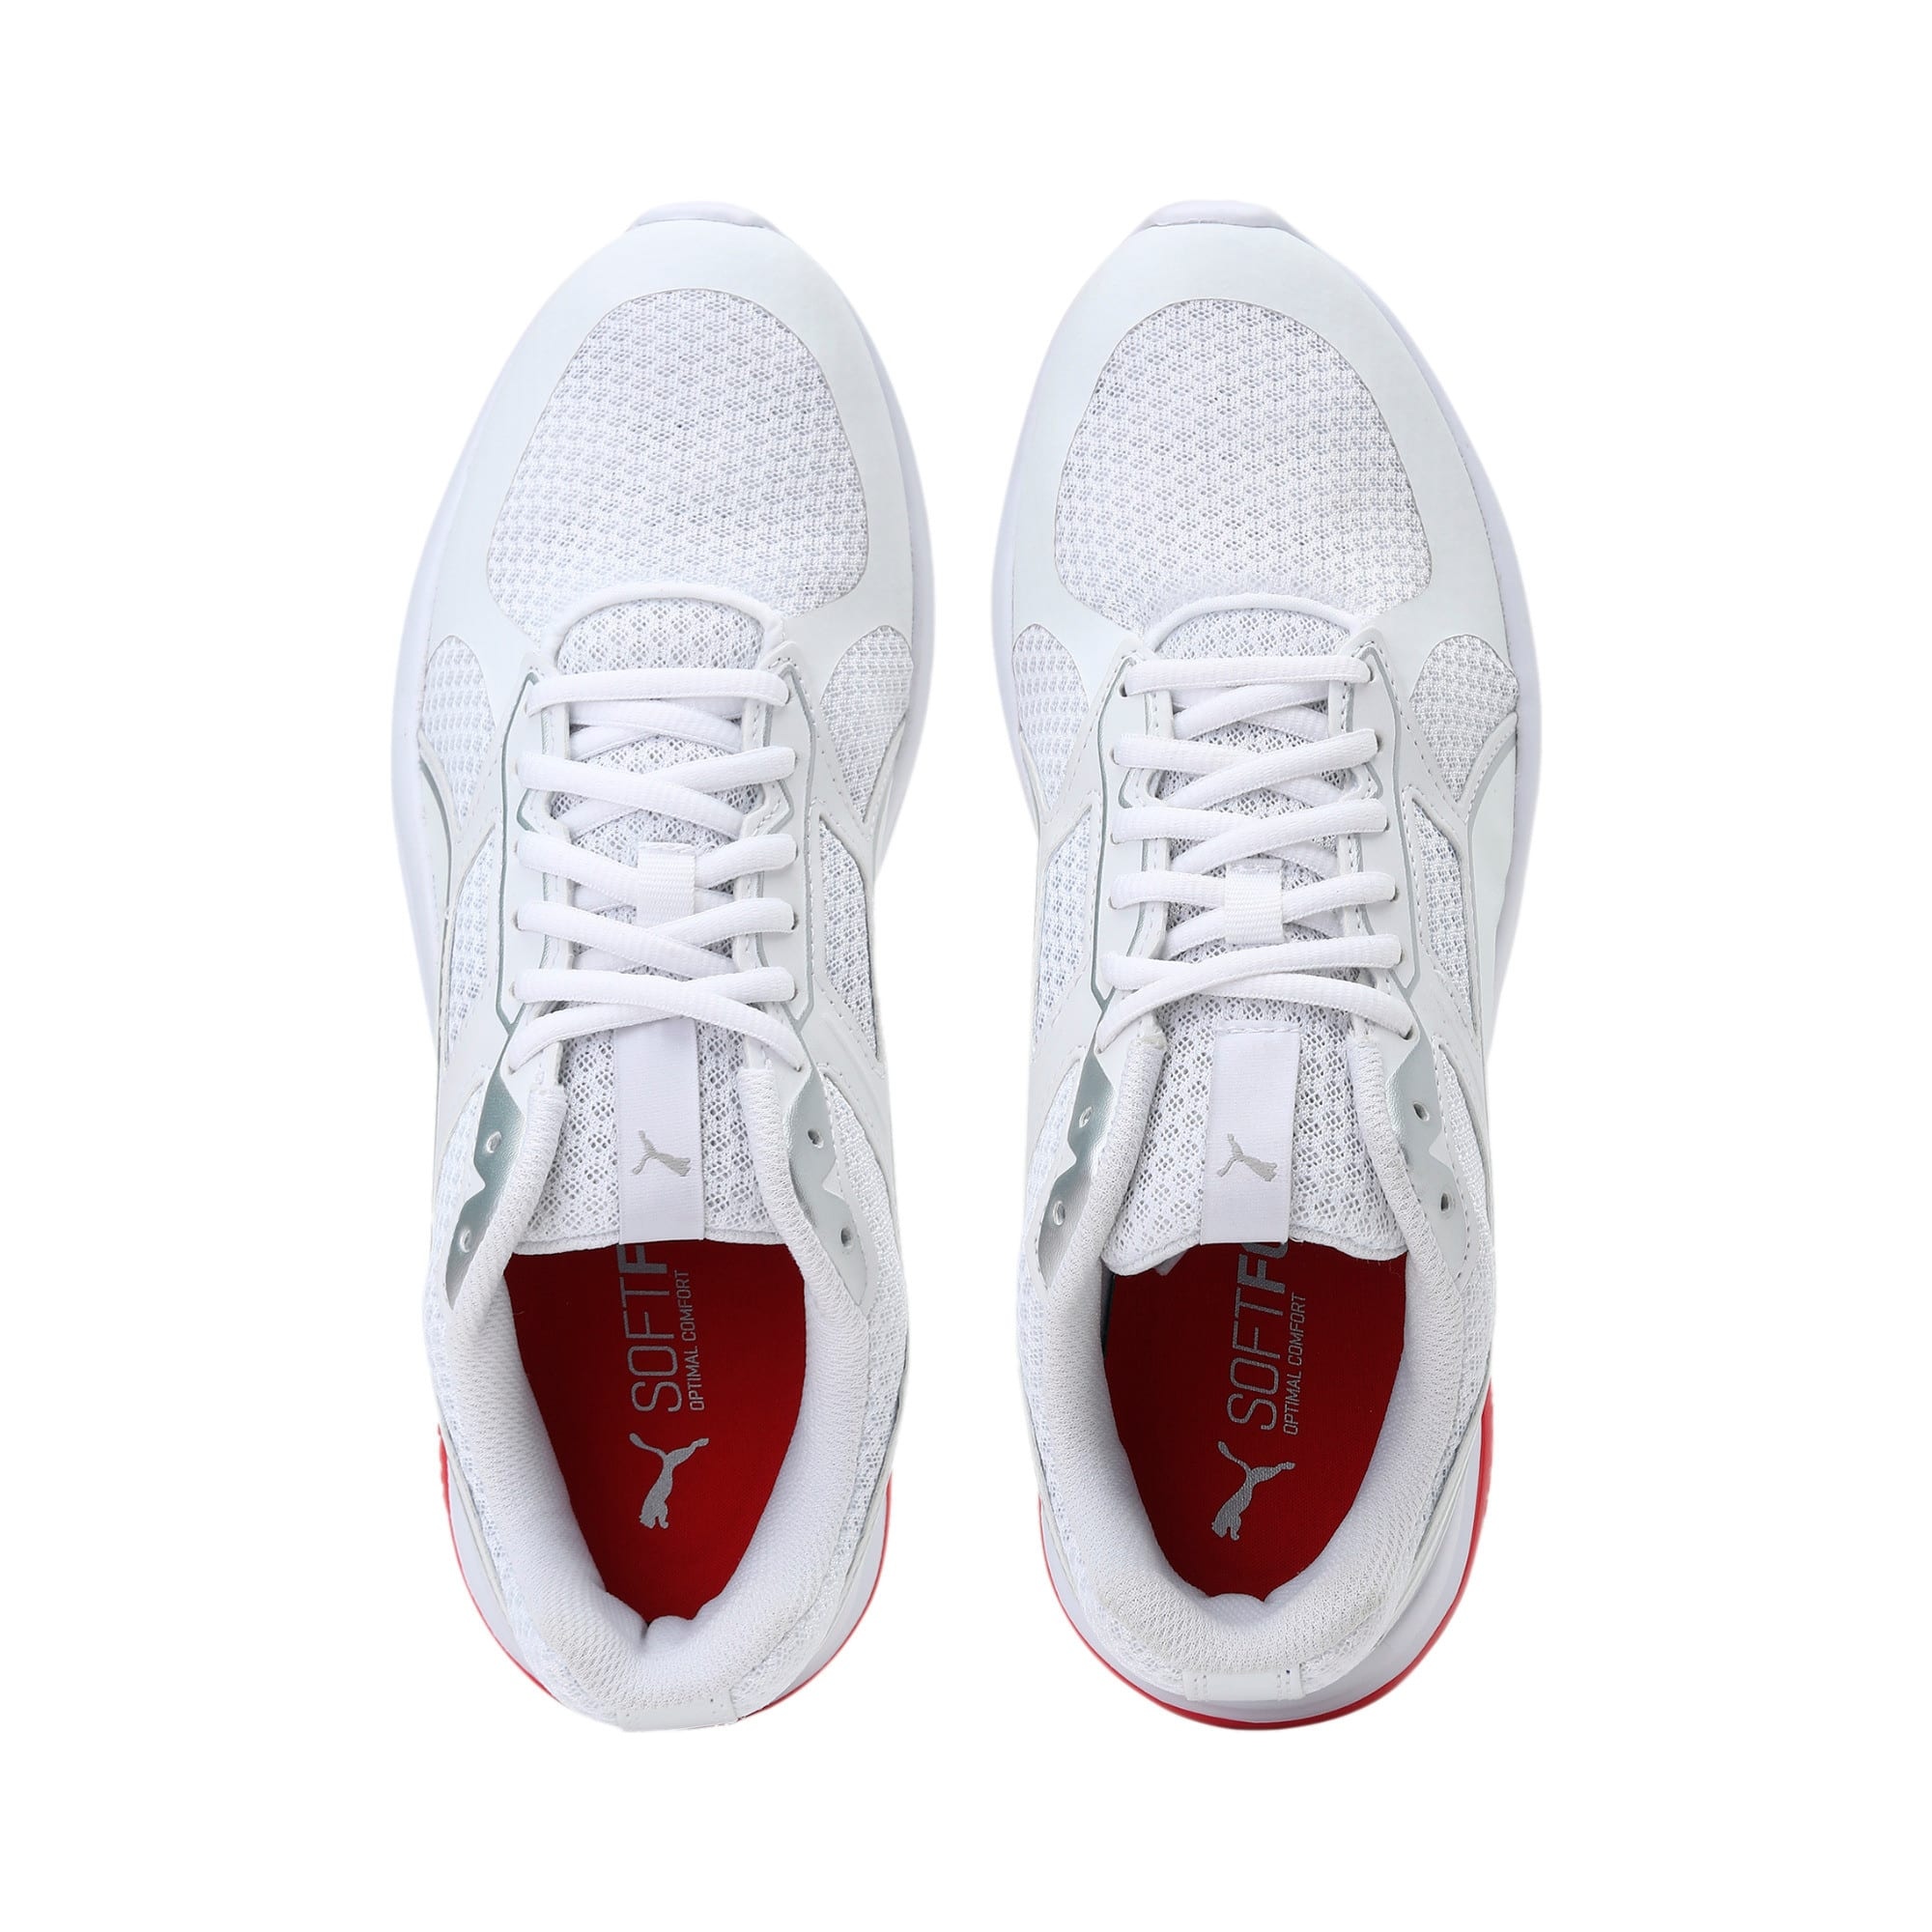 Thumbnail 6 of Escaper Tech Sneakers, White-Silver-High Risk Red, medium-IND